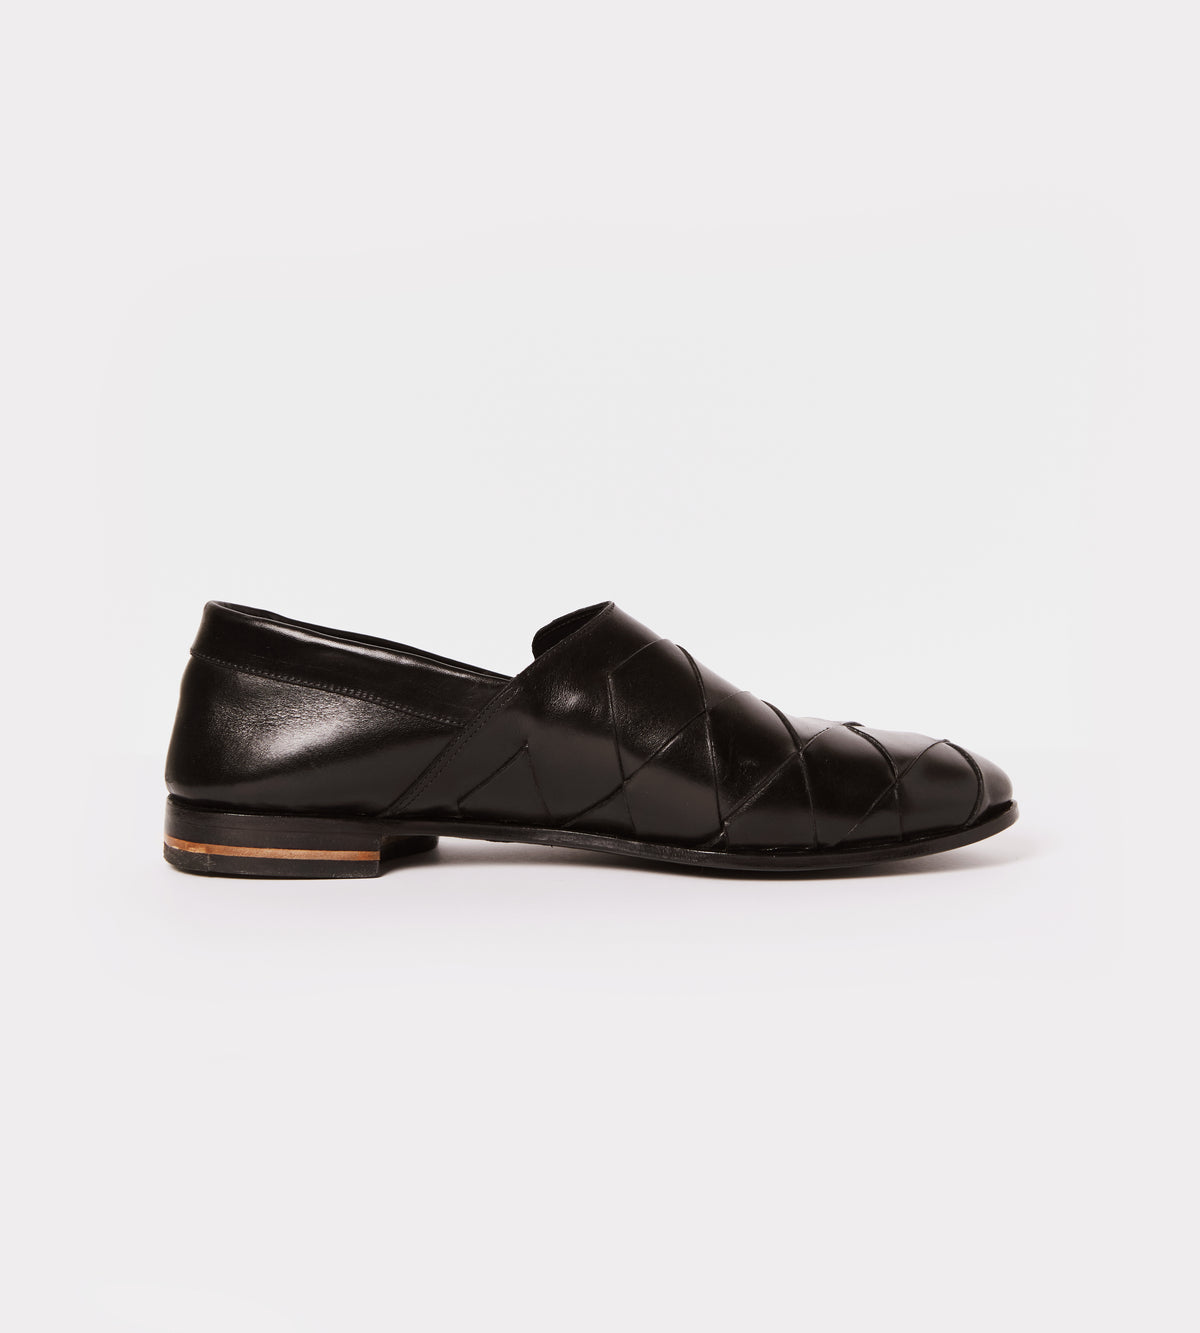 Black hand woven calf leather slip on inside view